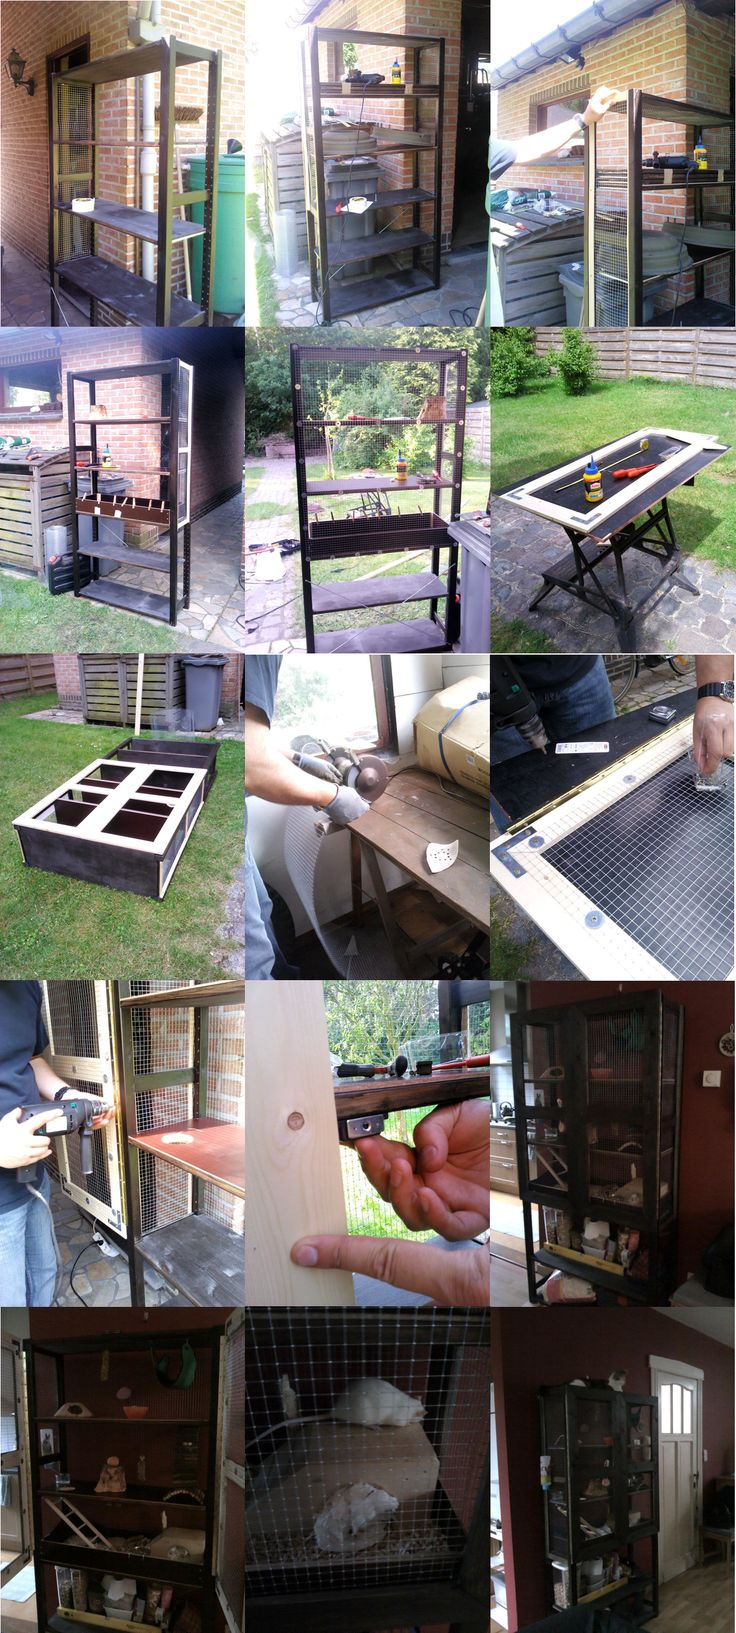 Ikea Shelf Rat Cage: Some time ago my stepdad and I made a ratcage out of an IKEA shelf. Just wanted to share the process